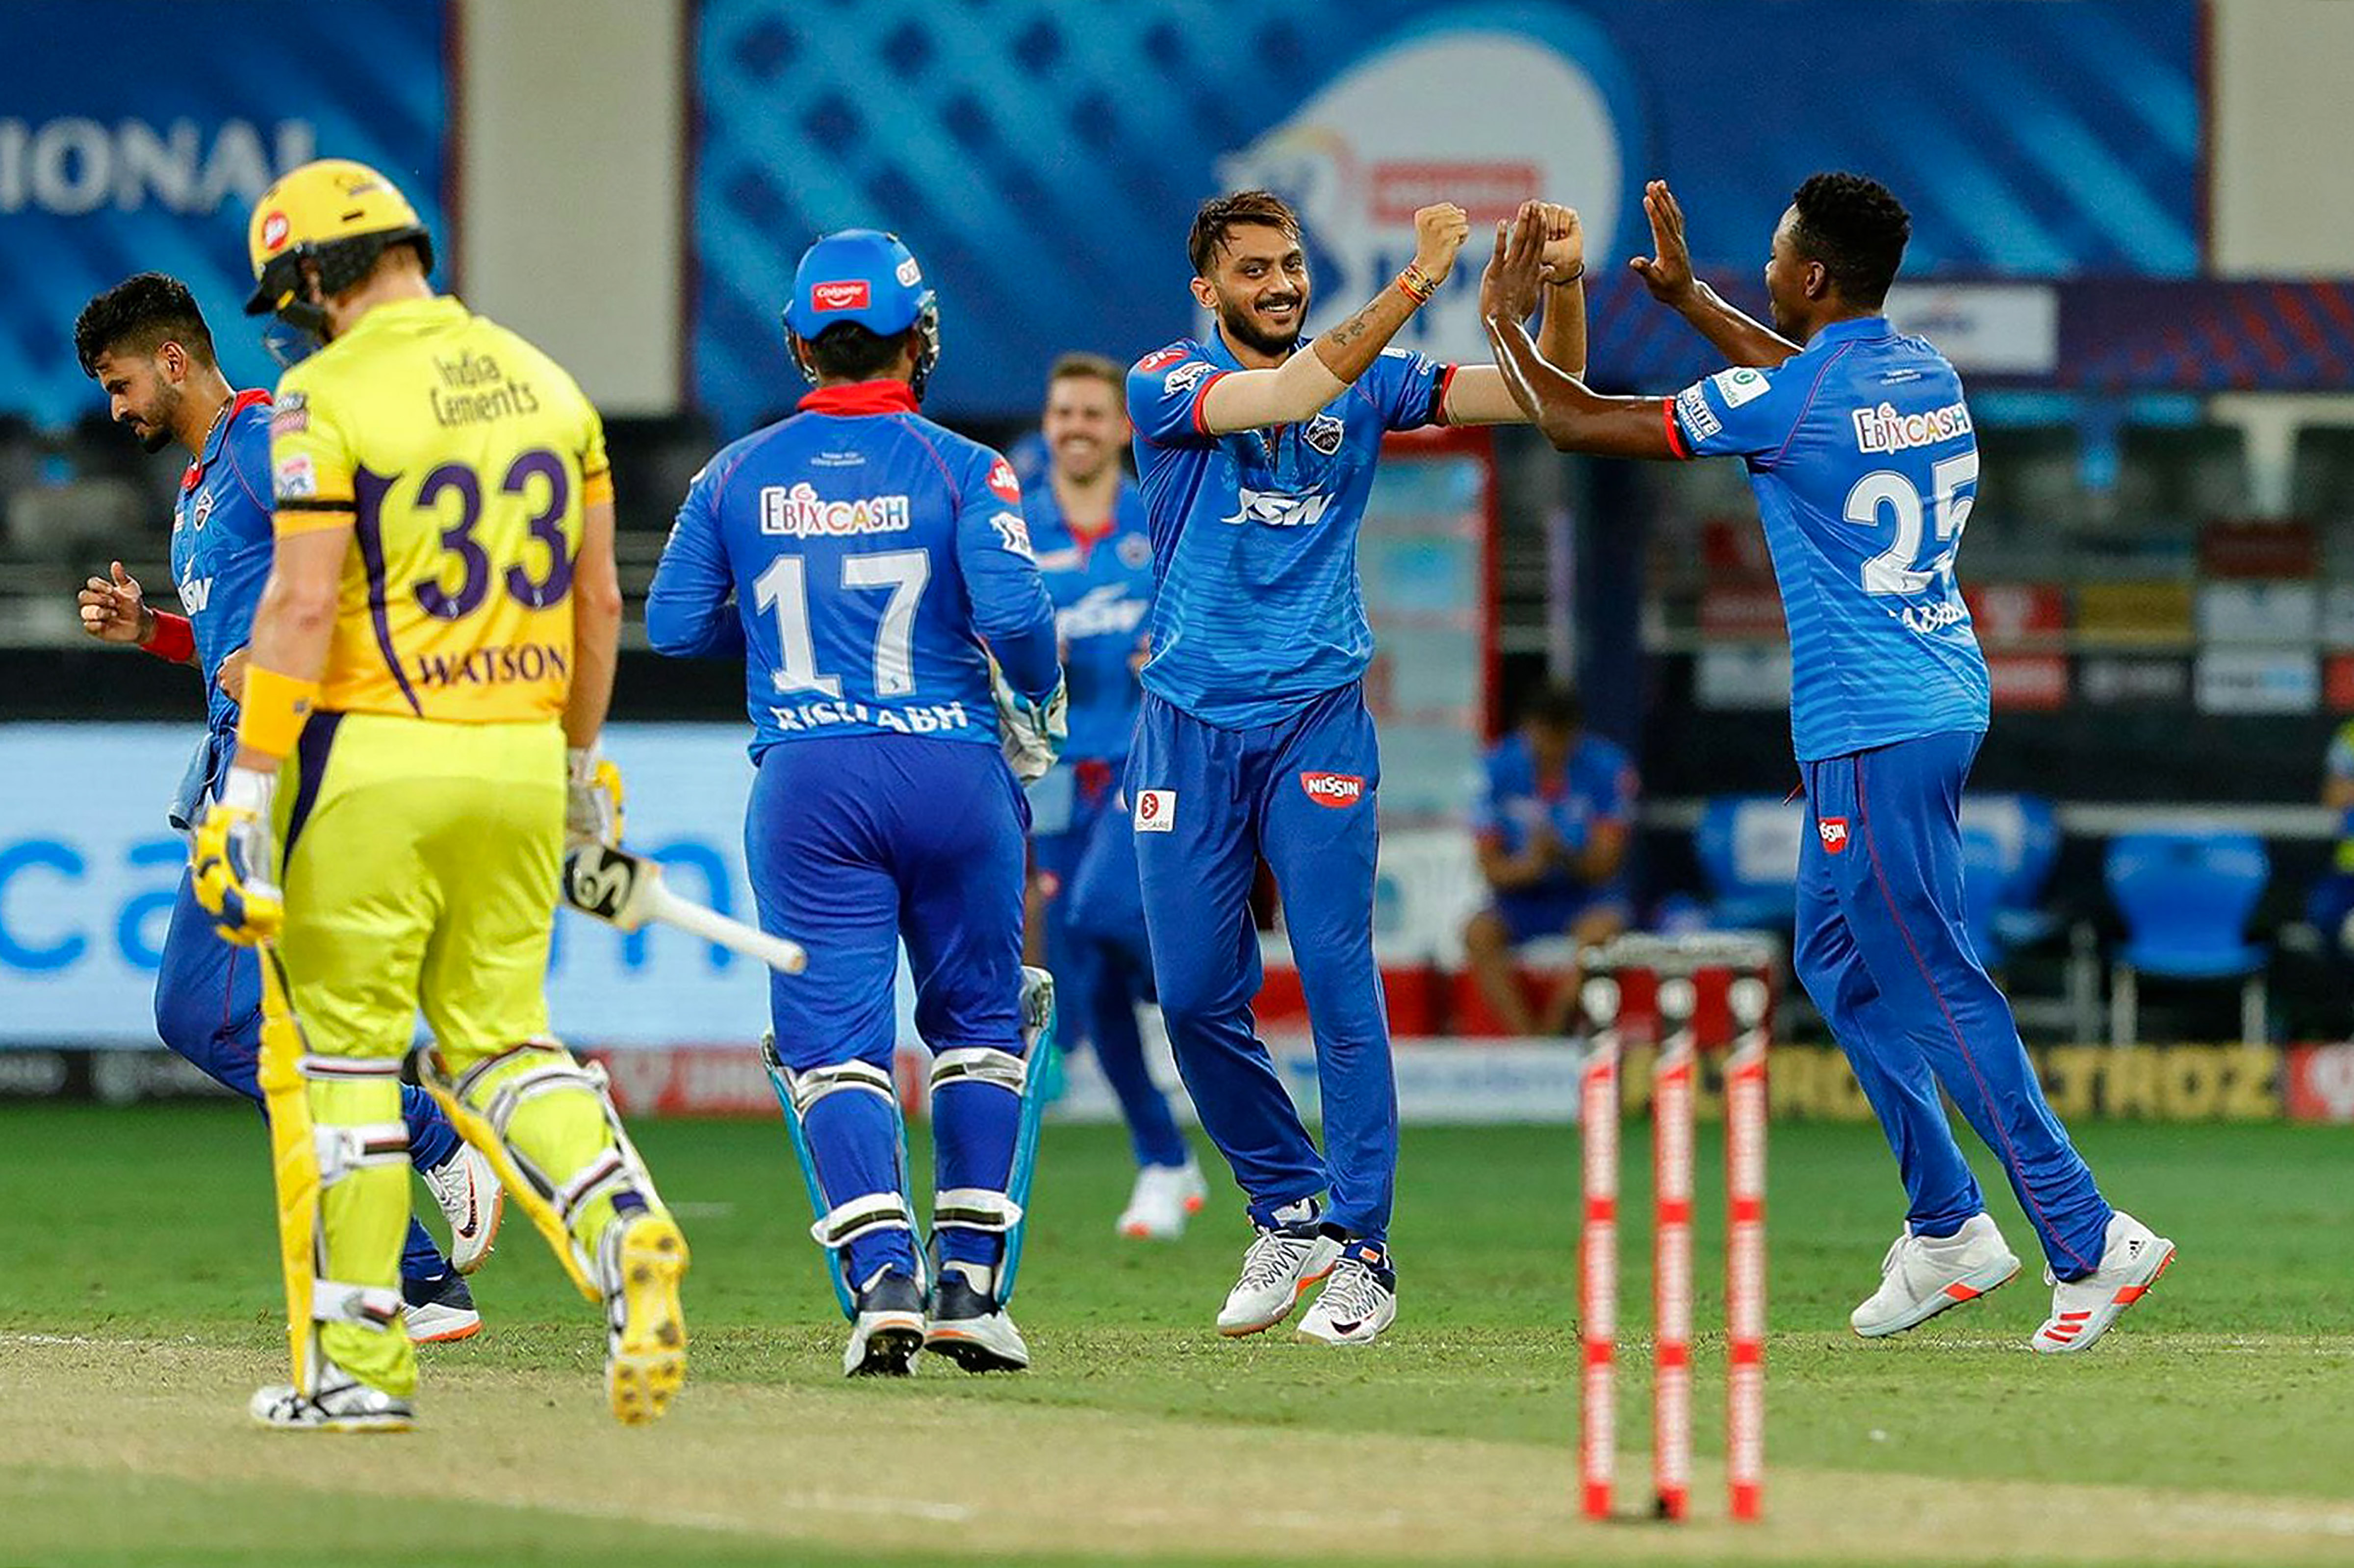 IPL 2020: Prithvi Shaw, spinners help Delhi Capitals grab top spot as CSK suffer 2nd straight loss